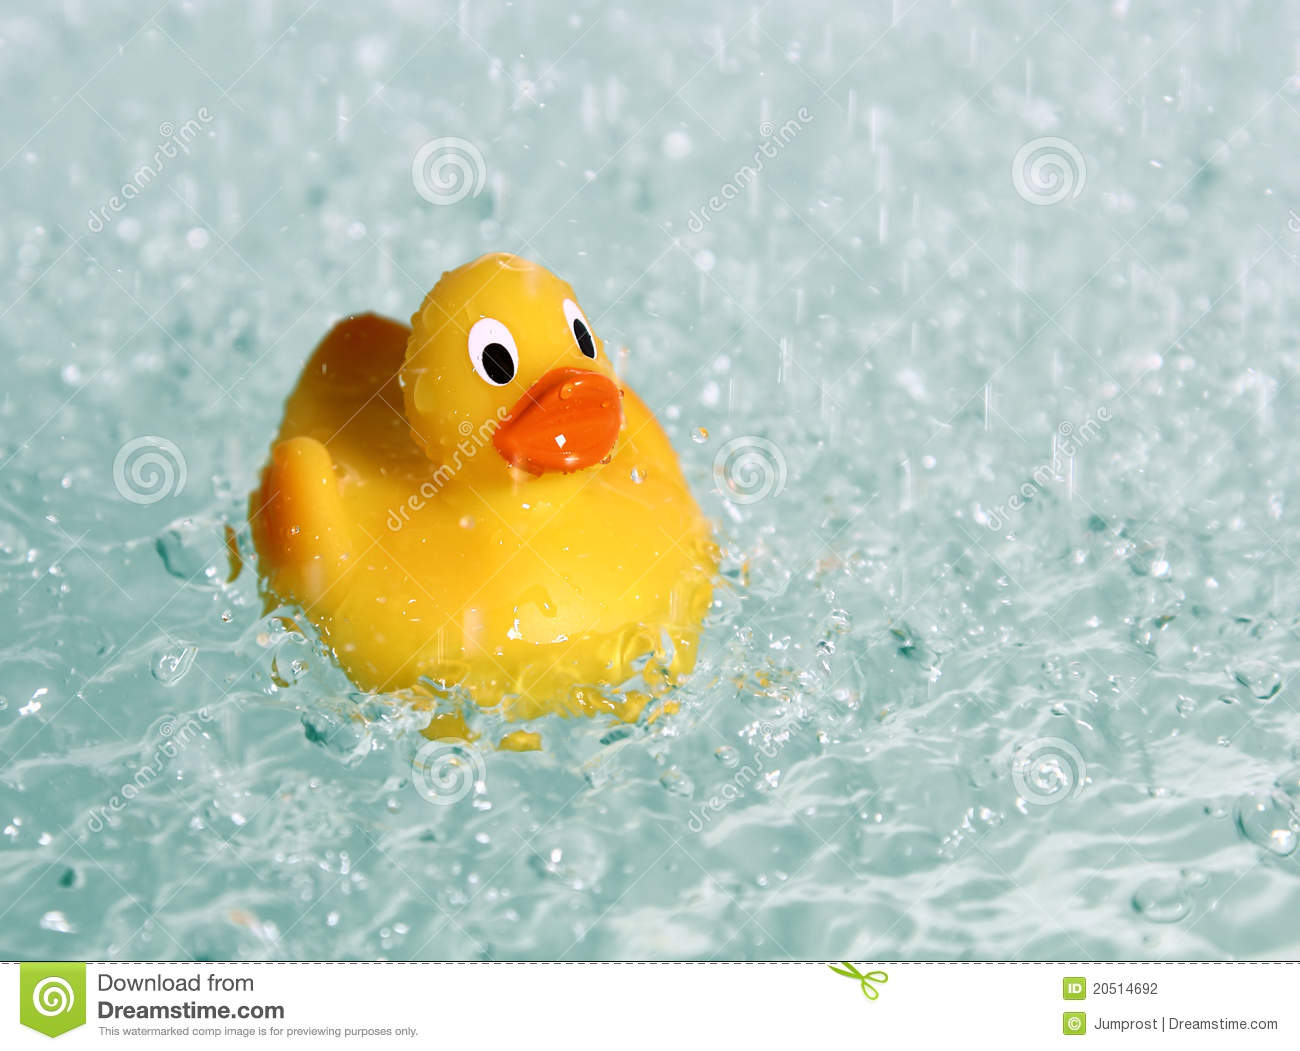 Rubber Toy Duck In Water Stock Photography - Image: 20514692